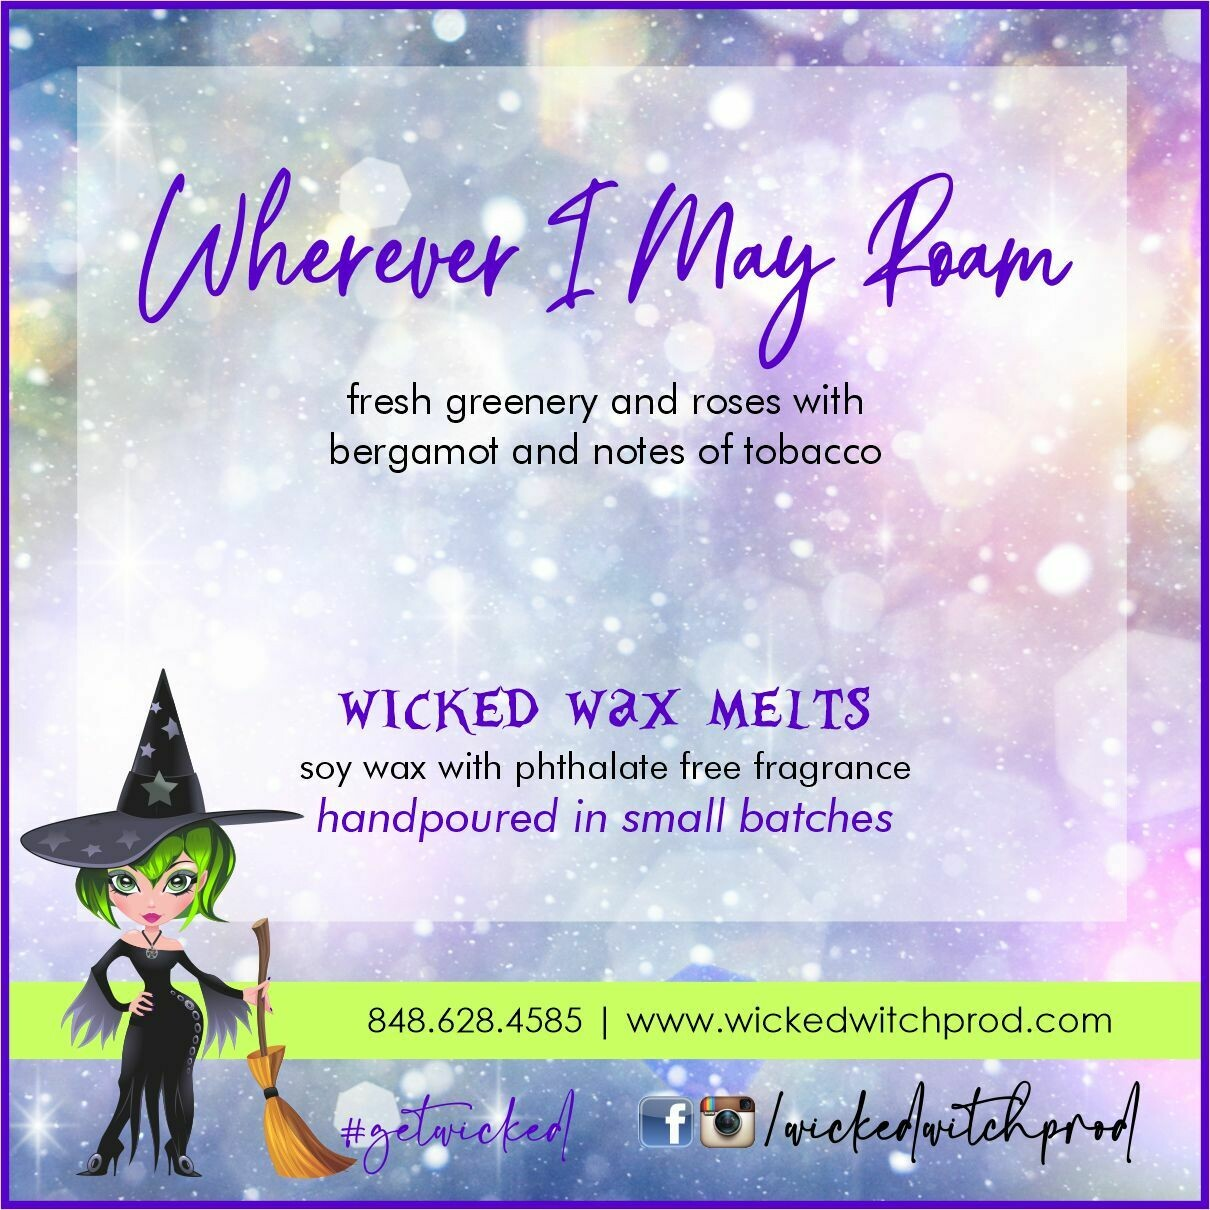 Wherever I May Gnome Wicked Wax Melts